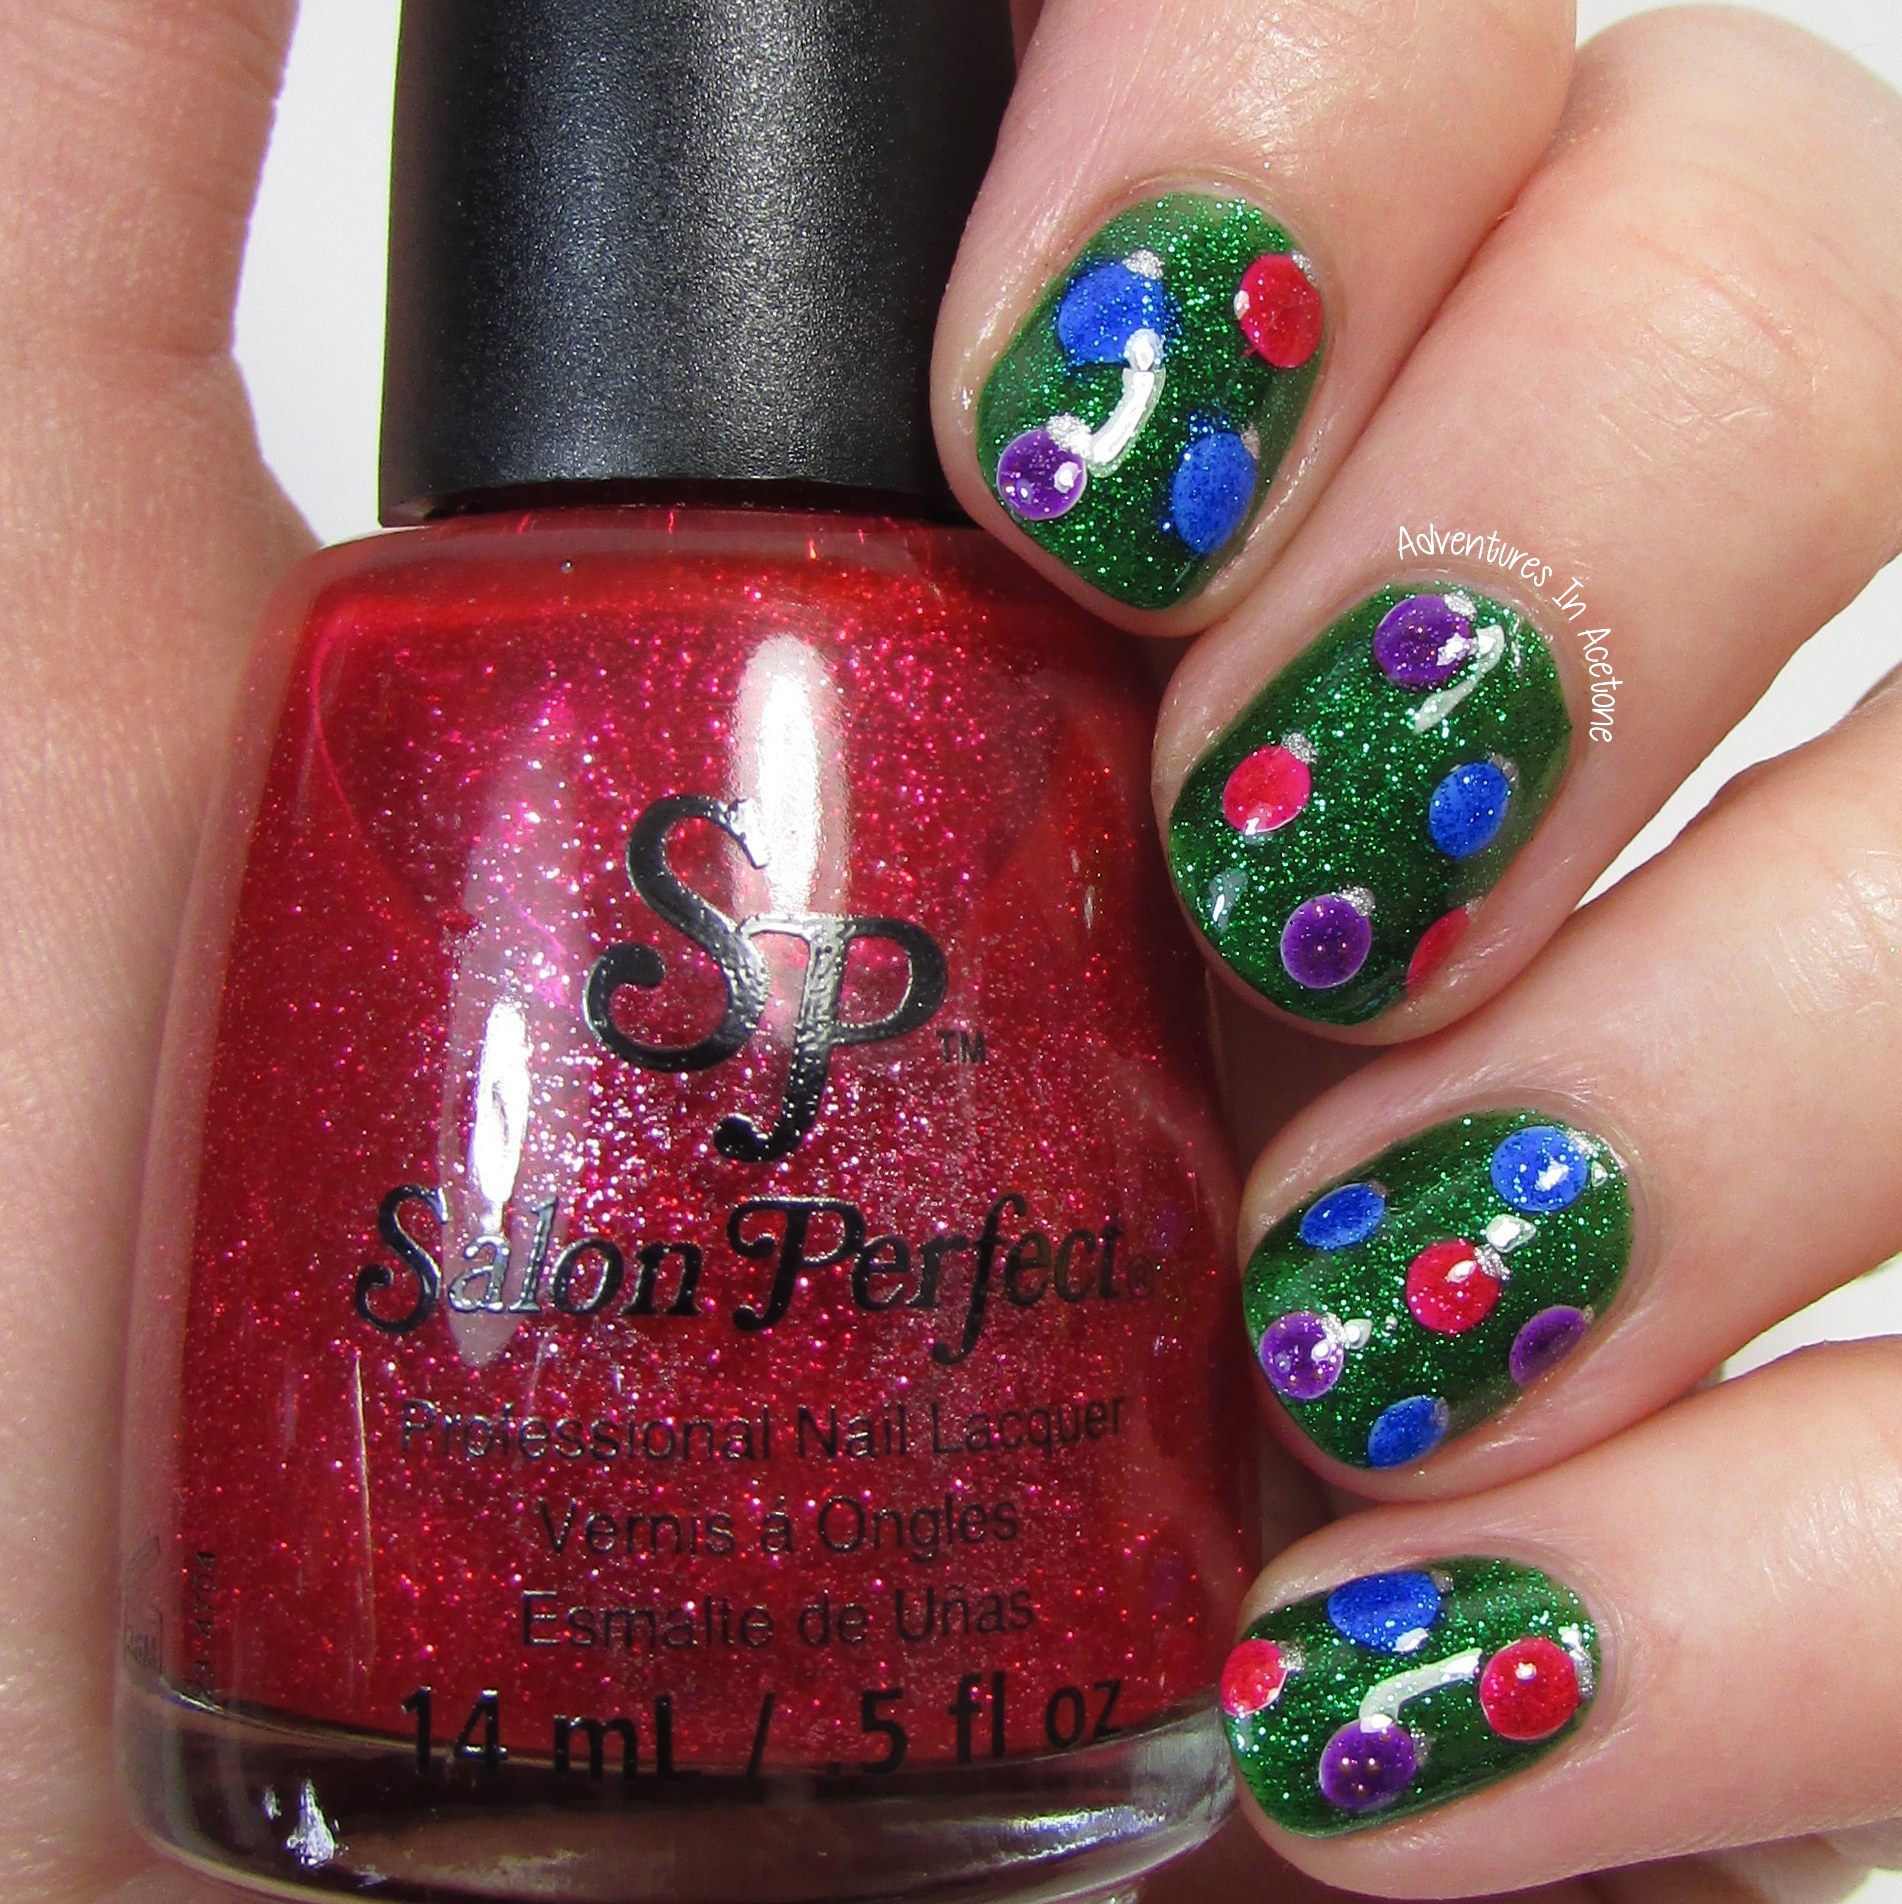 Christmas Tree Nails Design: The Digit-al Dozen DOES Traditions, Day 4: Christmas Tree